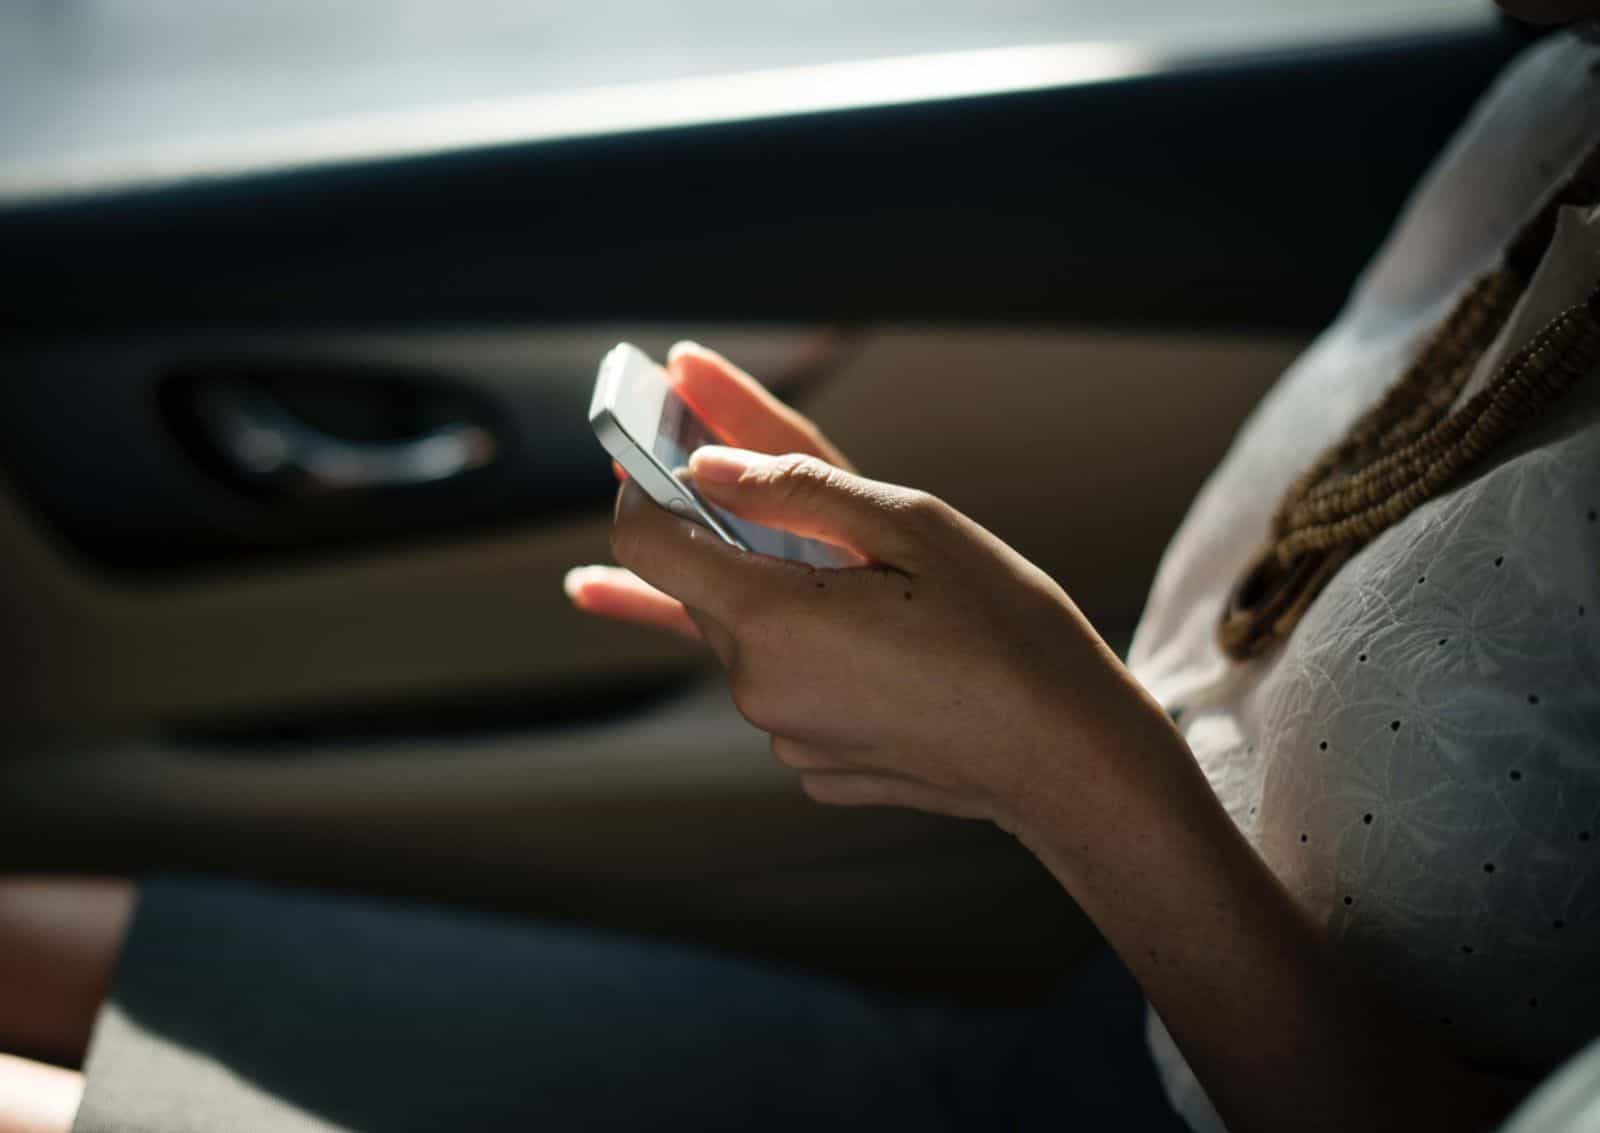 Colorado Auto Accident Caused by Cell Phone Use